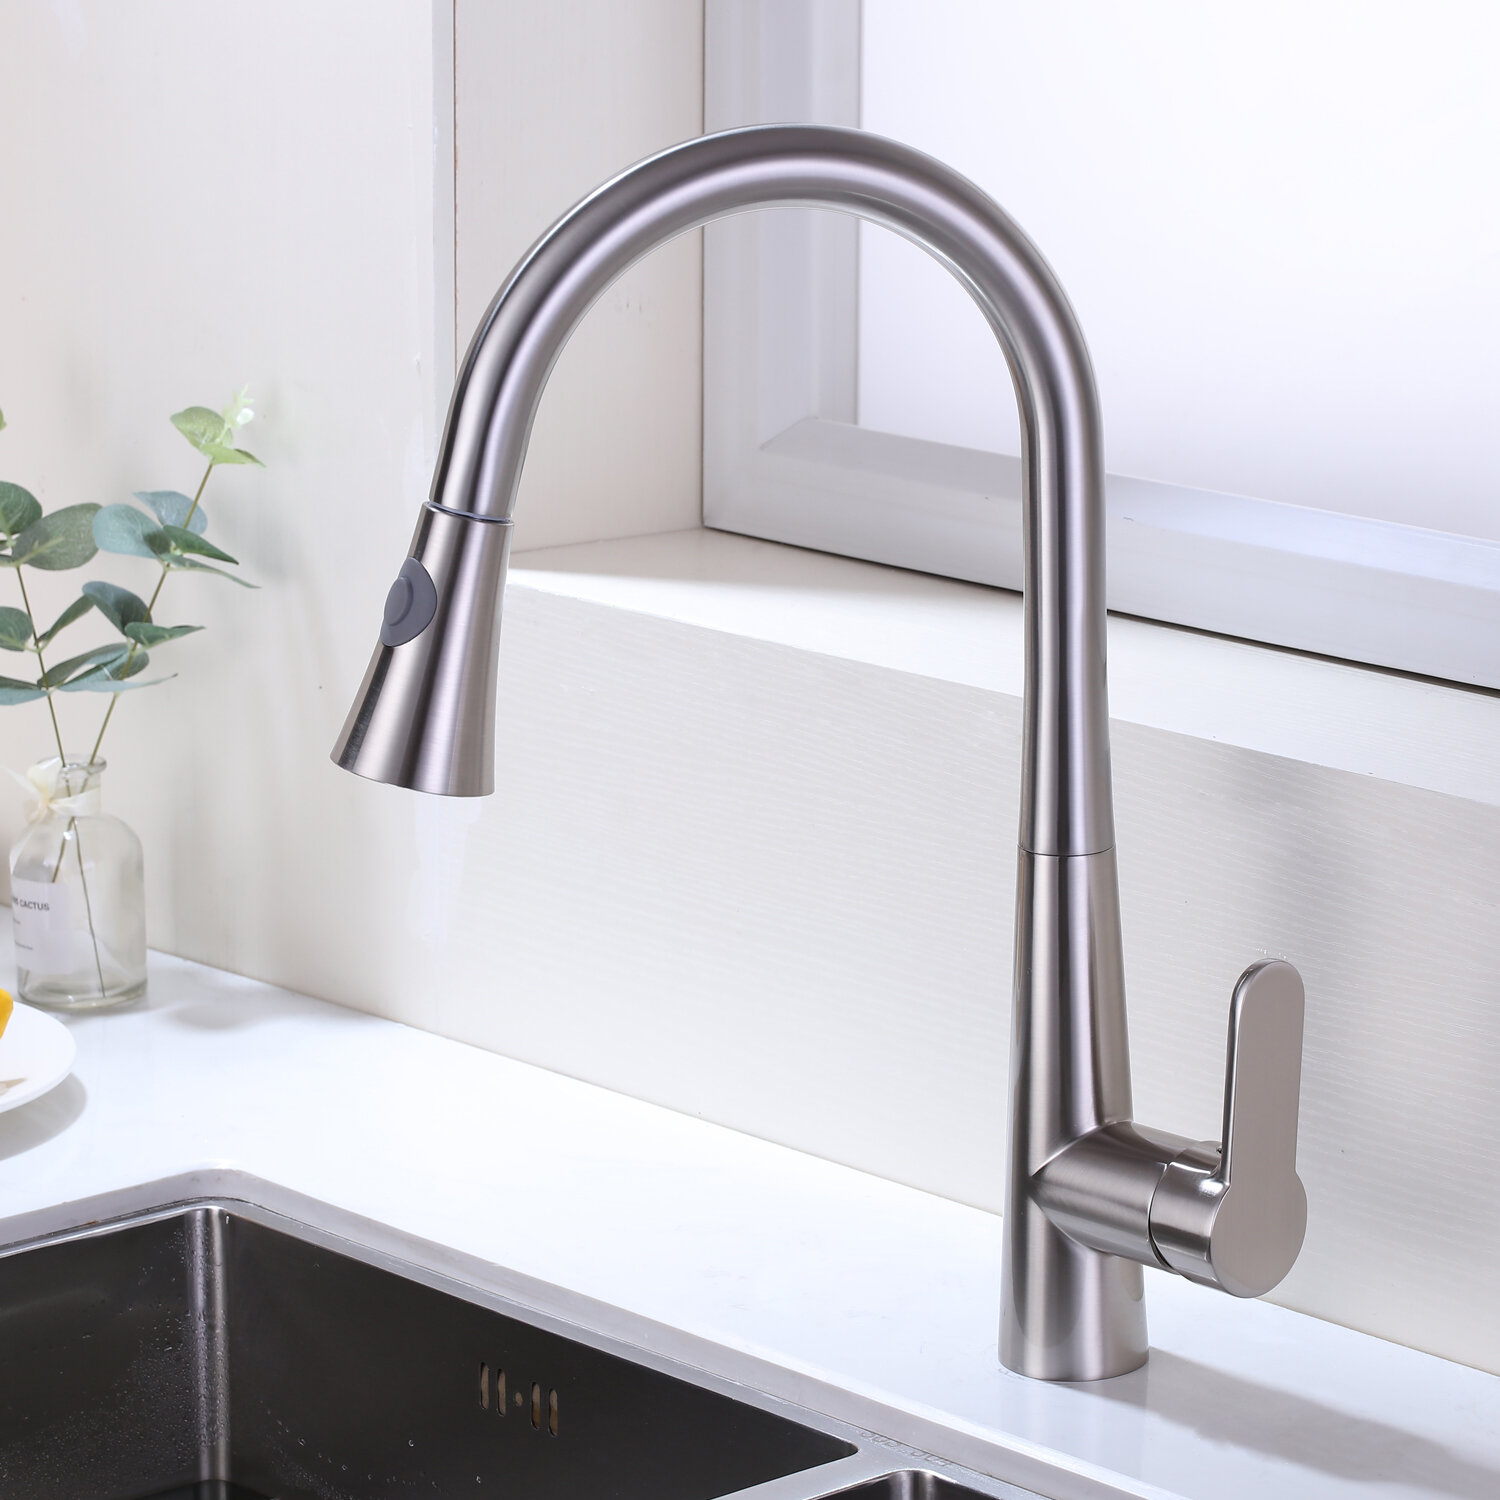 Kbp Home Pull Out Single Handle Kitchen Faucet Wayfair